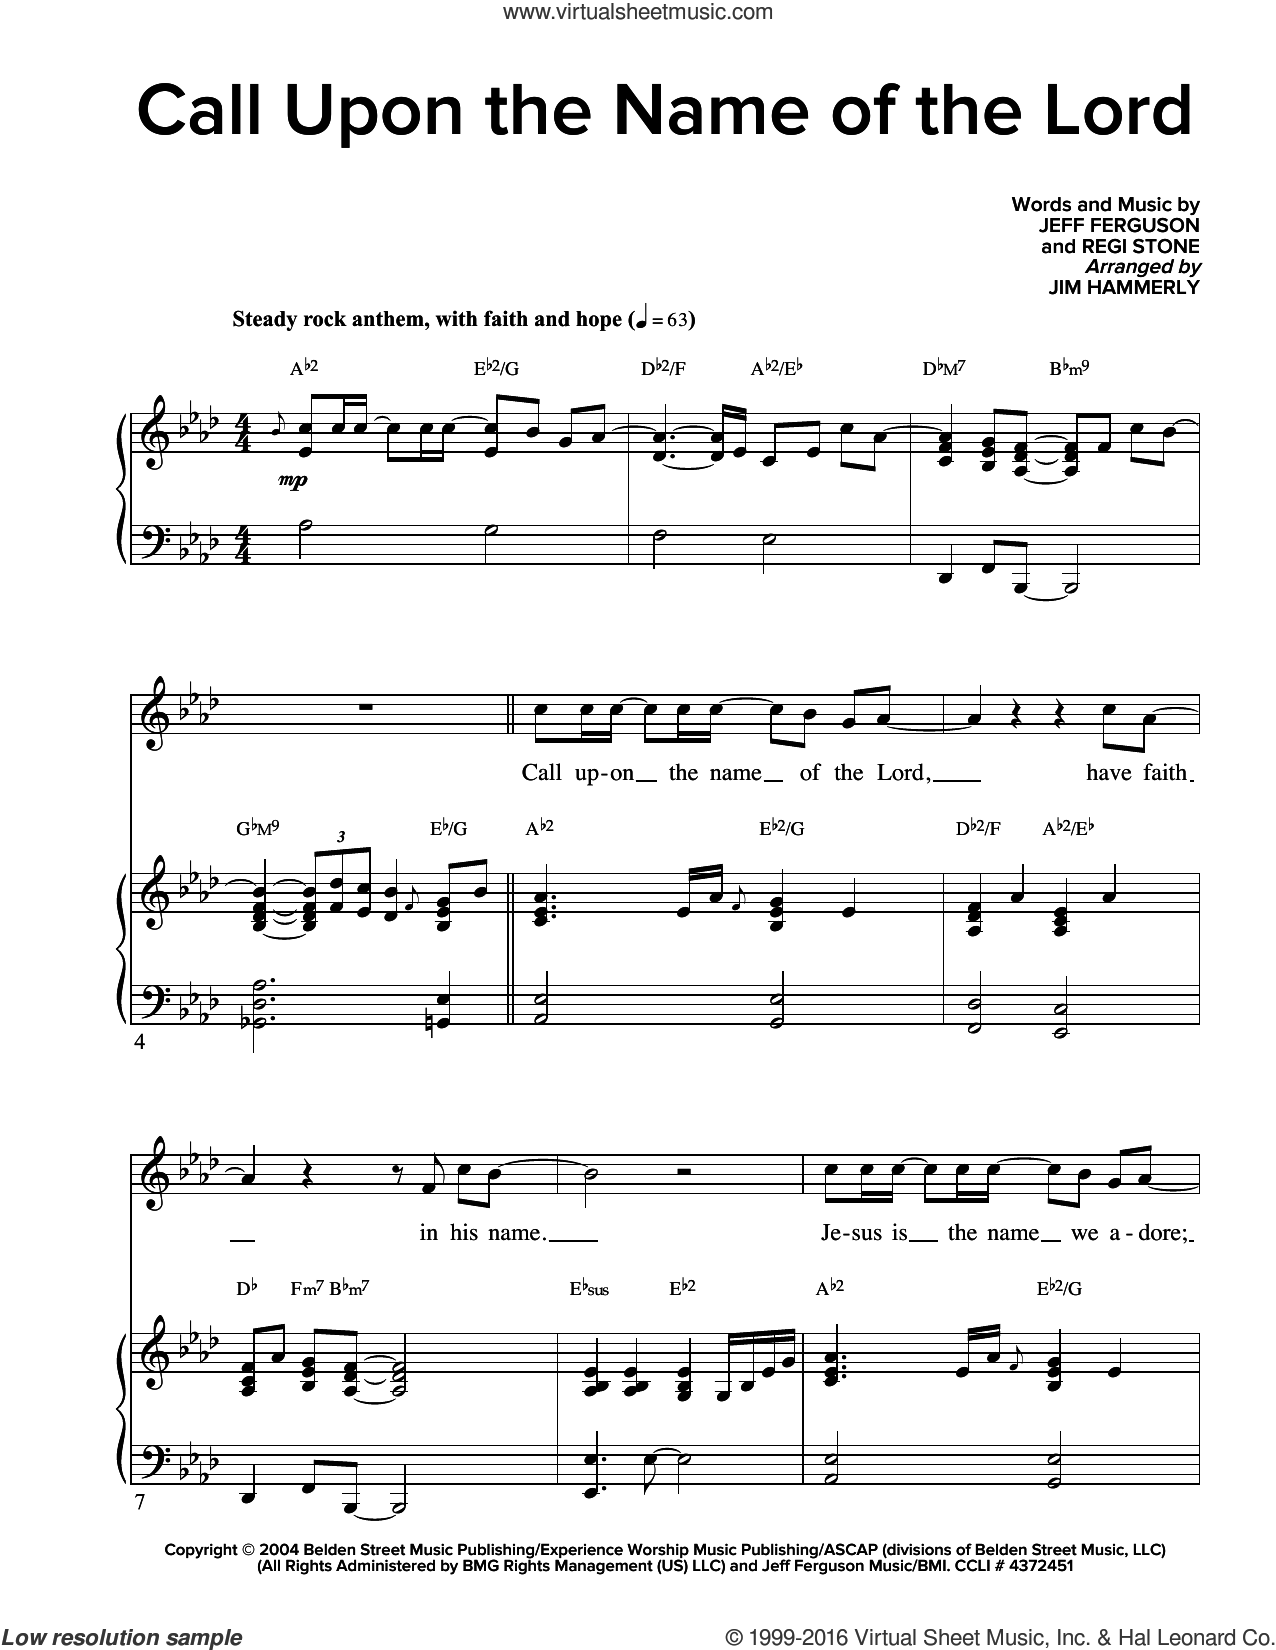 Call Upon The Name Of The Lord sheet music for voice and piano by Regi Stone and Jeff Ferguson, intermediate